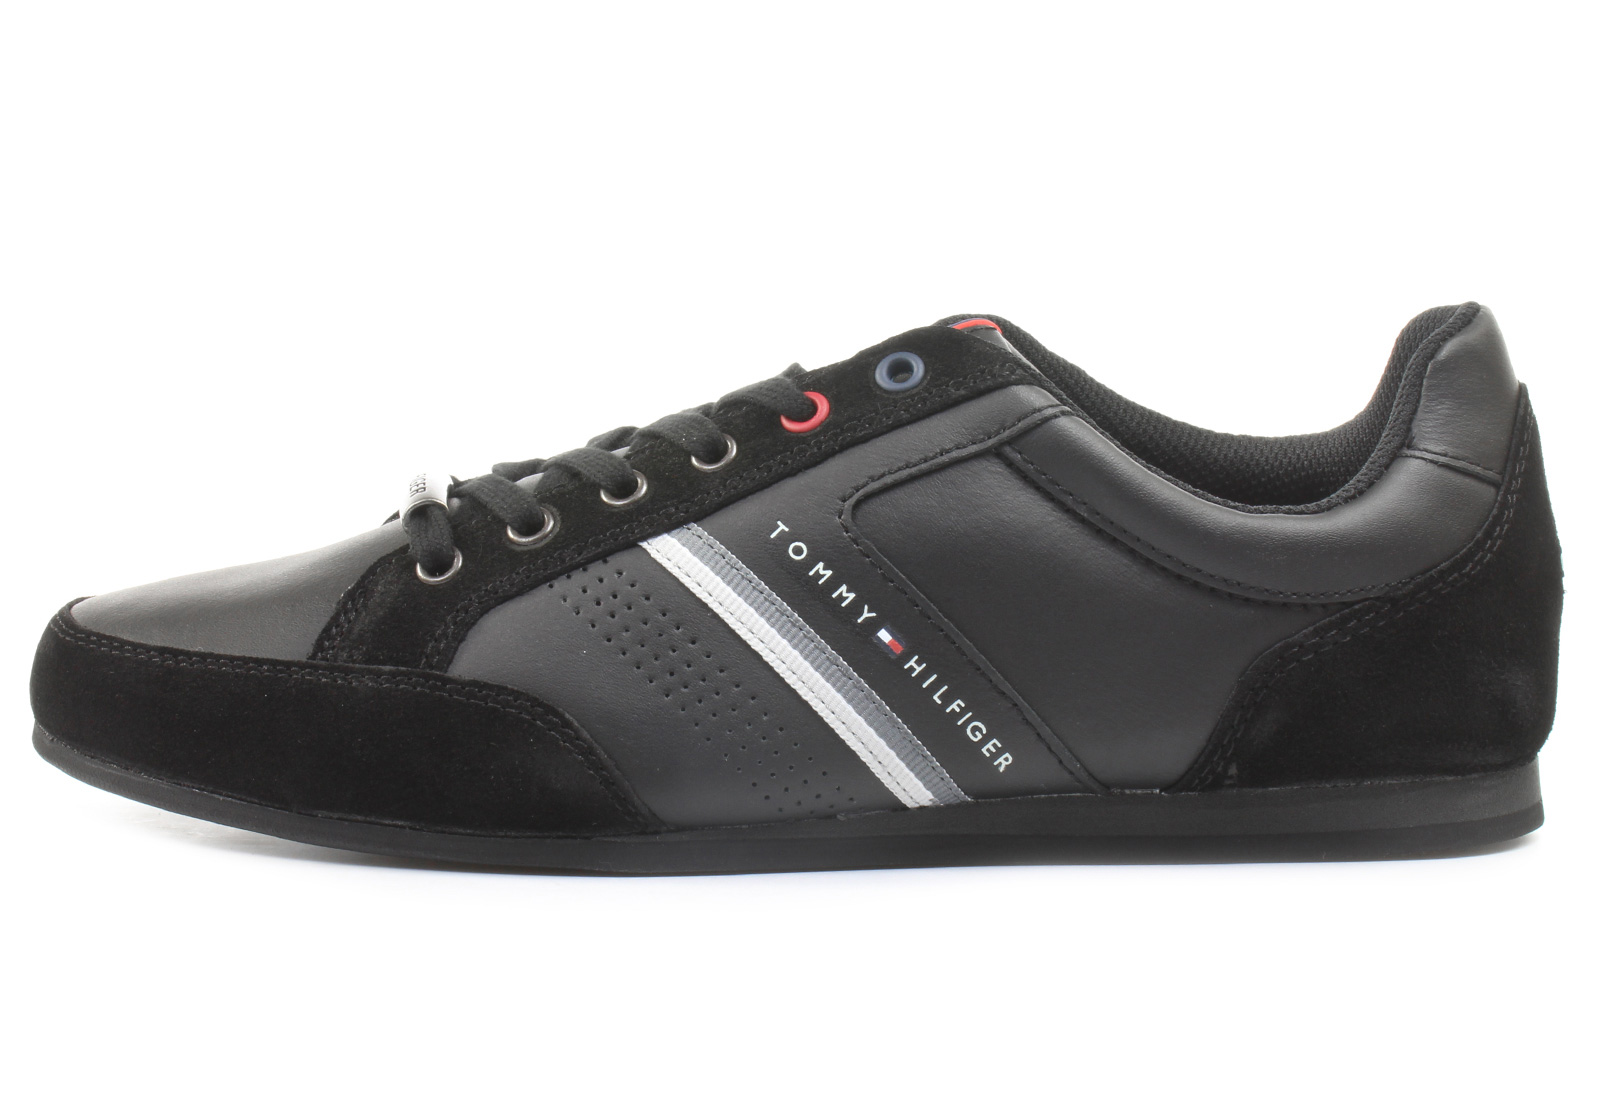 619e90f3bda55 Tommy Hilfiger Niske Tenisice Crne Tenisice - Ross 3c - Office Shoes ...